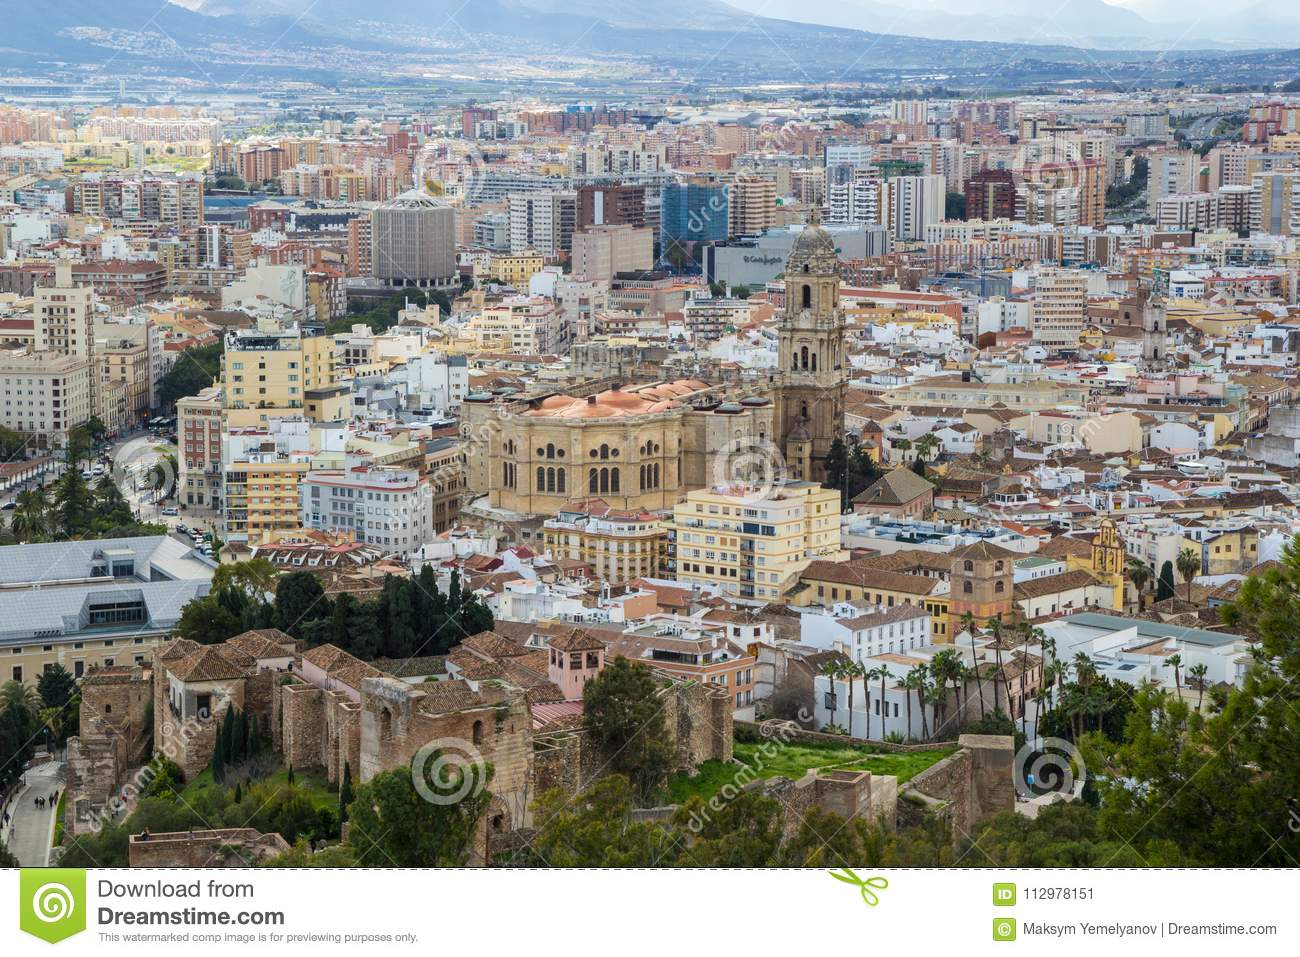 Cityscape aerial view of Malaga, Andalucia, Spain. Cathedral